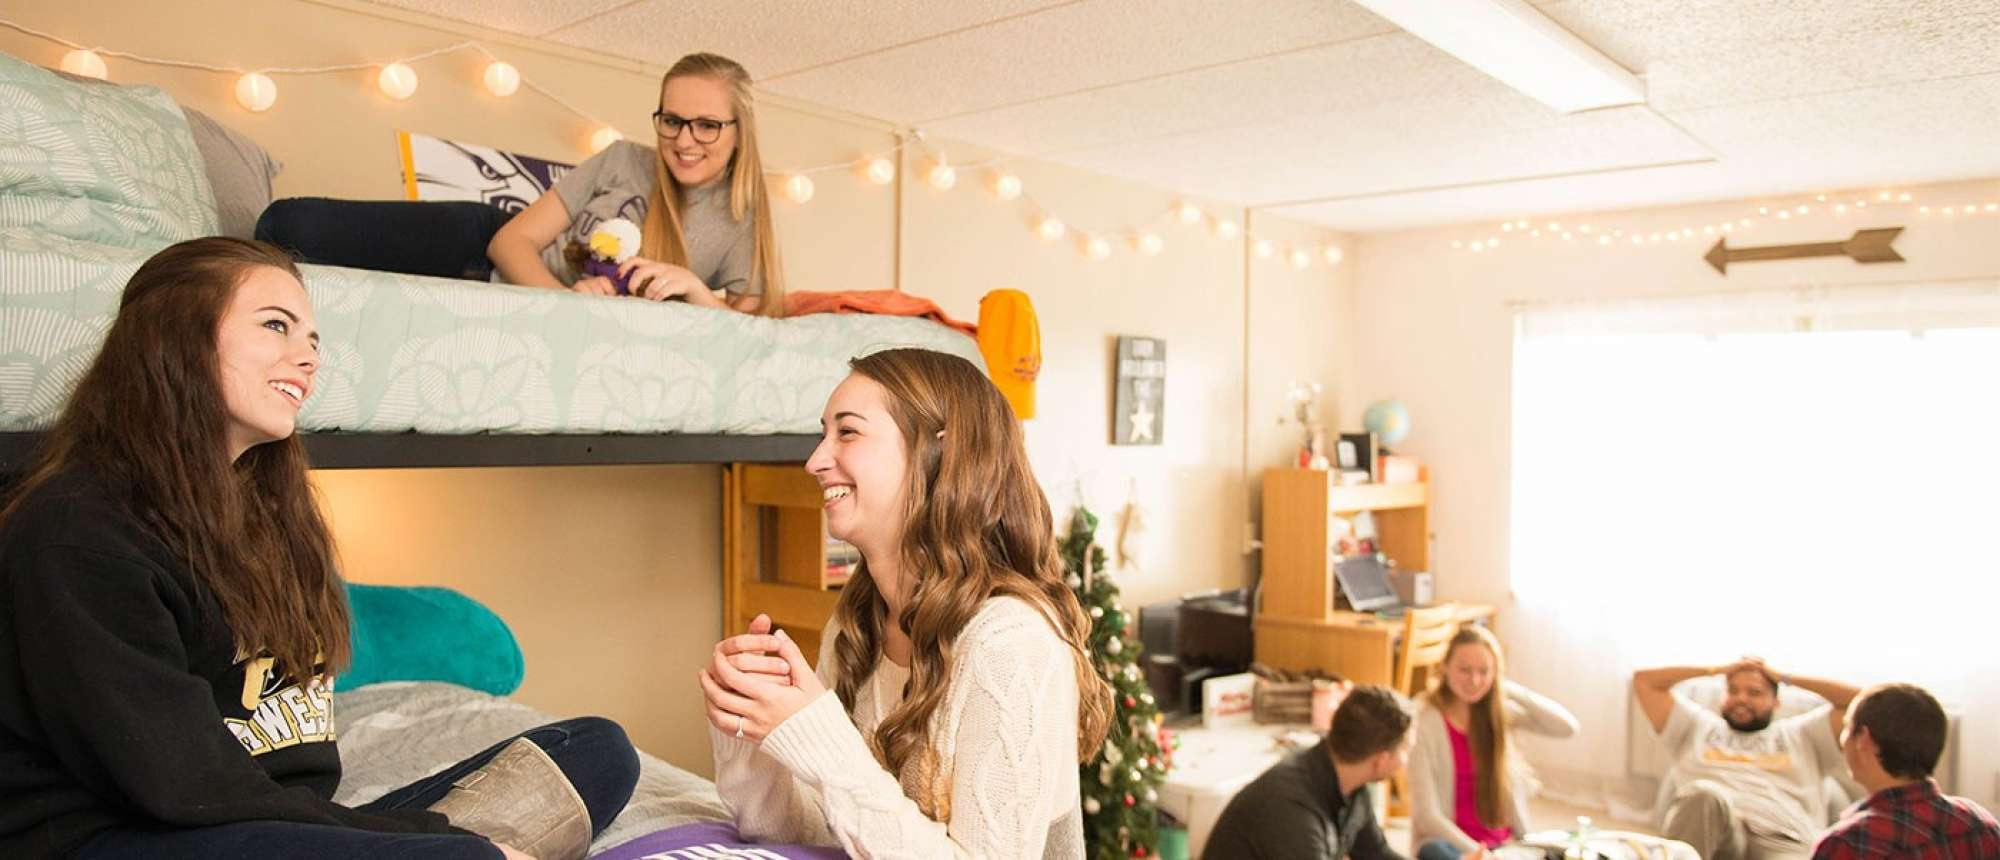 Students hanging out together in dorm room.